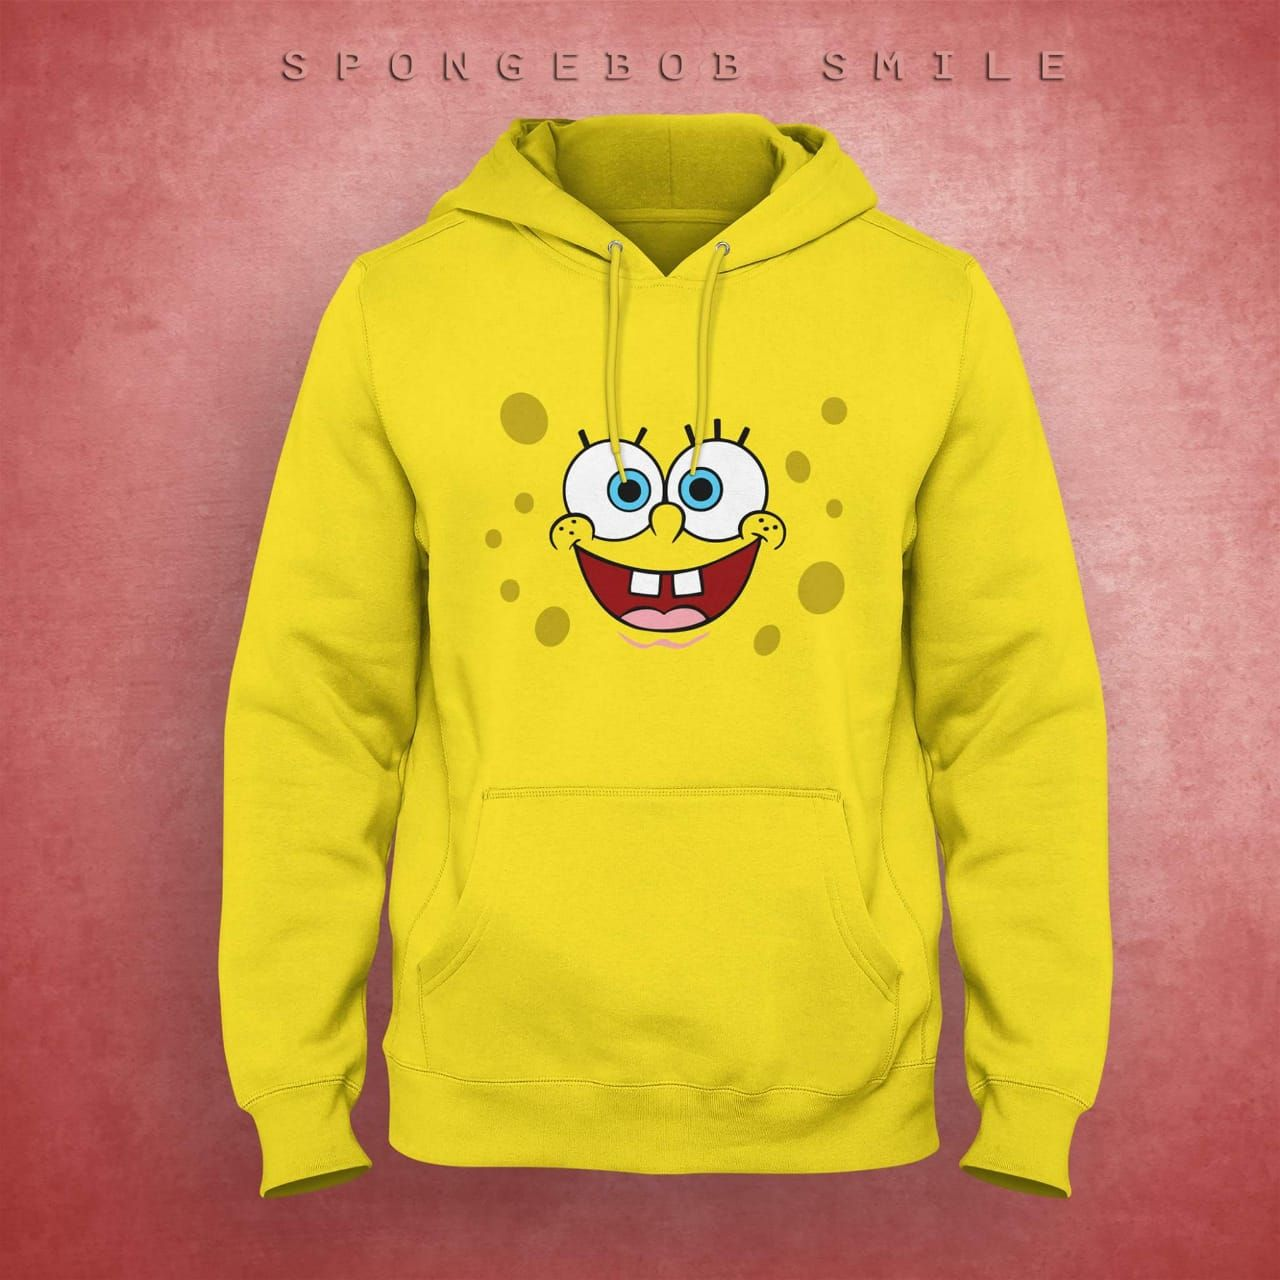 Buy Sponge Bob For Men At Juniba Hoodies Hoodies Men Spongebob Clothes